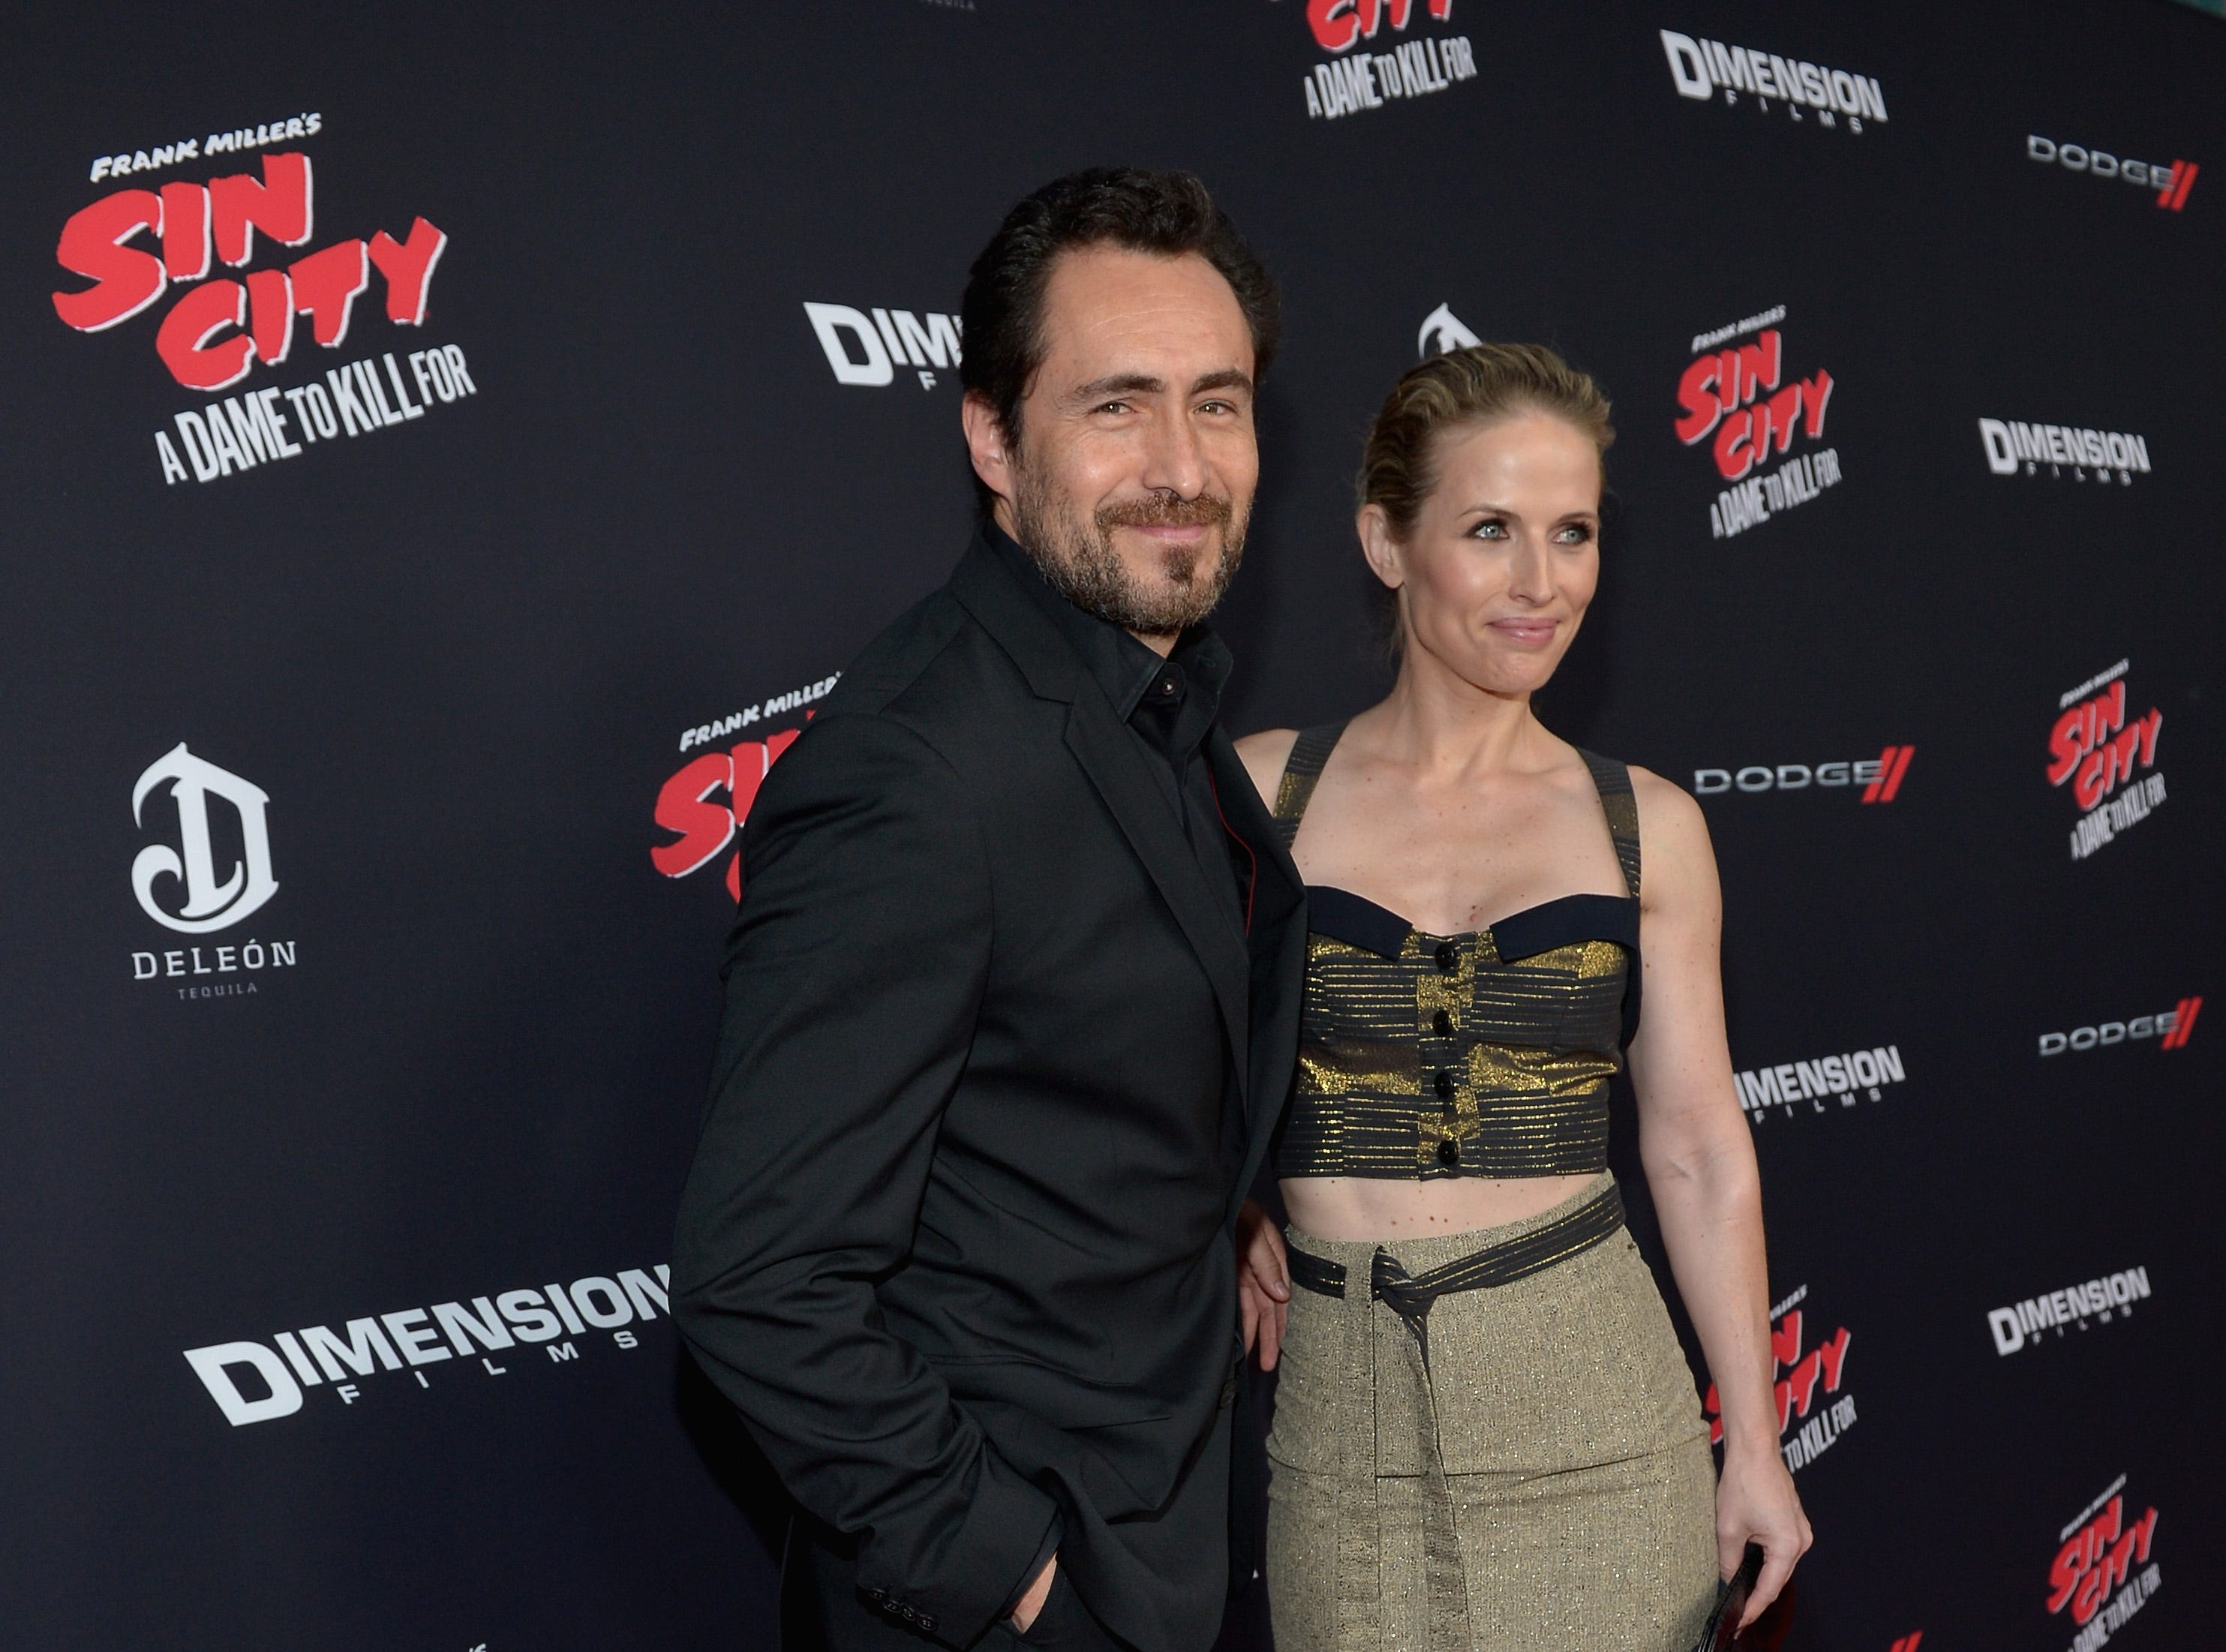 """Demian Bichir and Stefanie Sherk attend the premiere of """"Sin City: A Dame To Kill For"""" on Aug. 19, 2014, in Hollywood, California."""